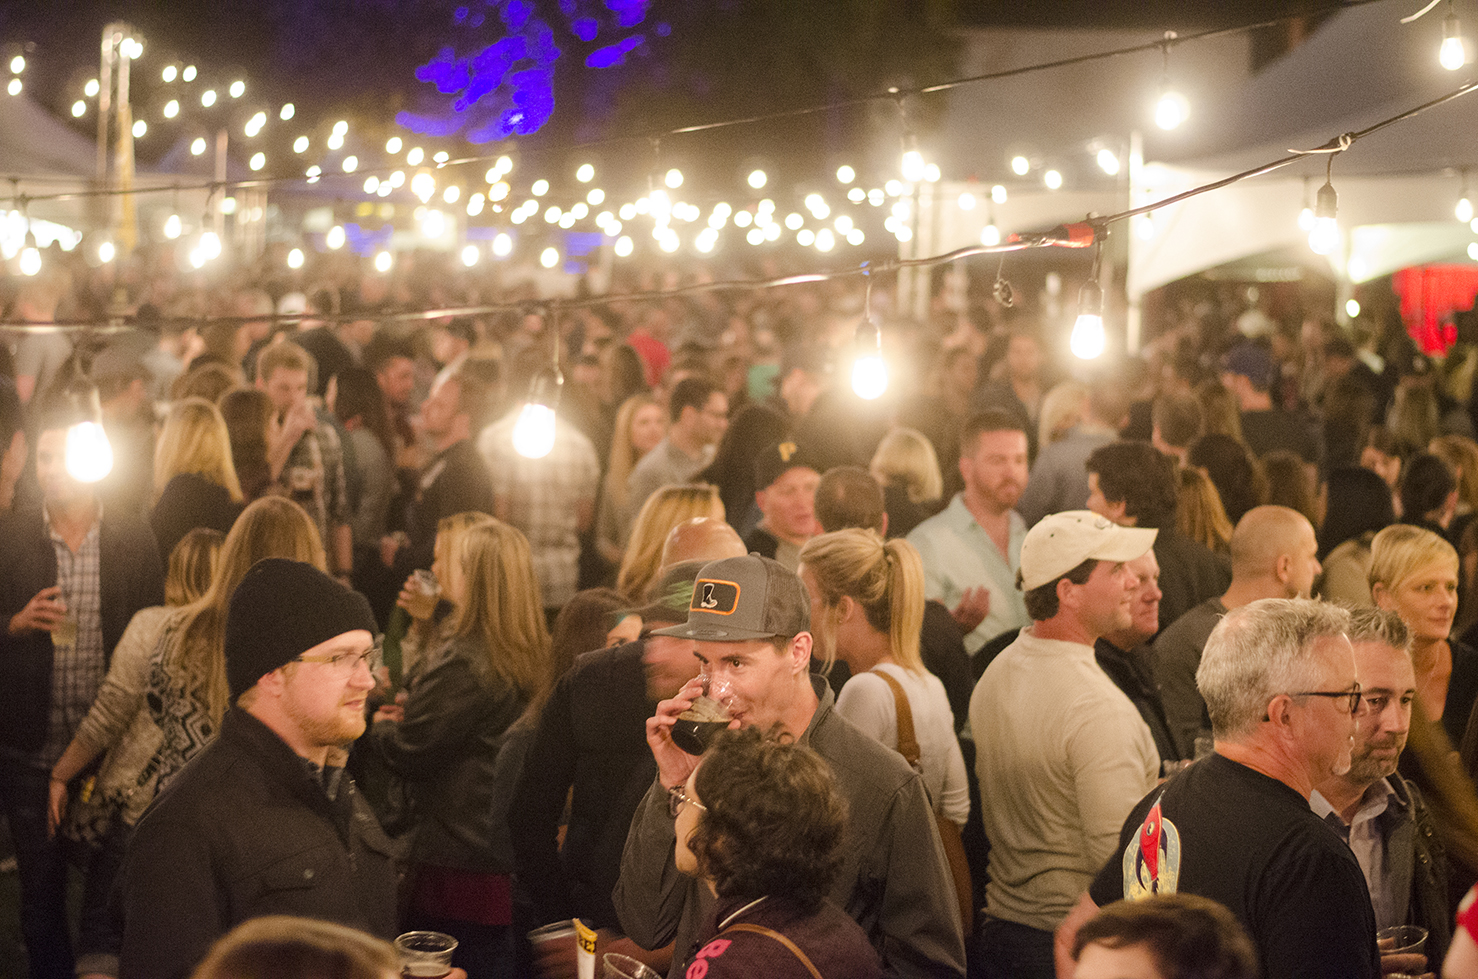 The Windsor Craft Beer Festival is a happening event.